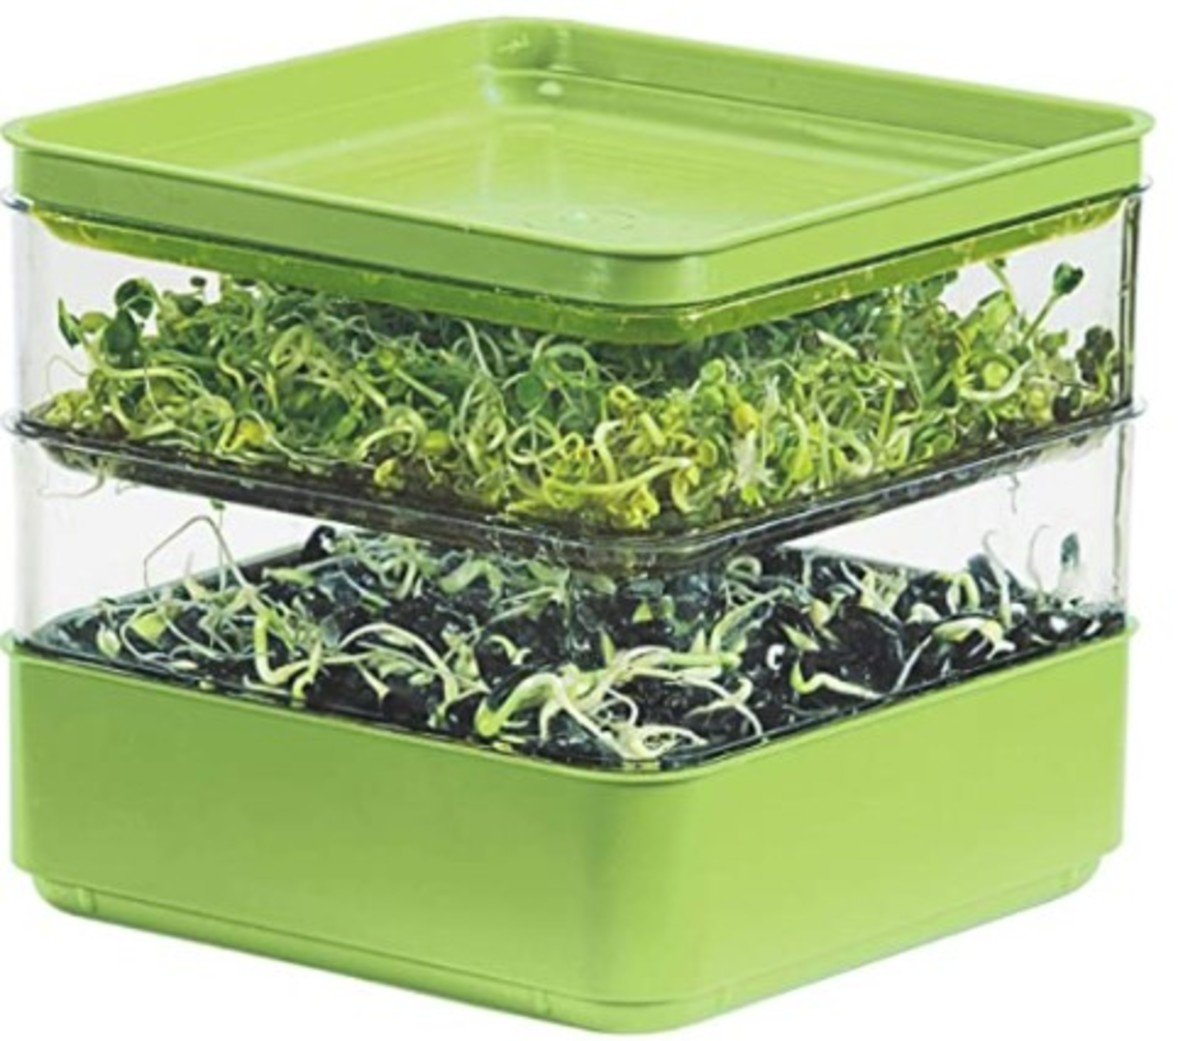 Gardens Alive! Two-Tiered Seed Sprouter to sprout your own seeds at home